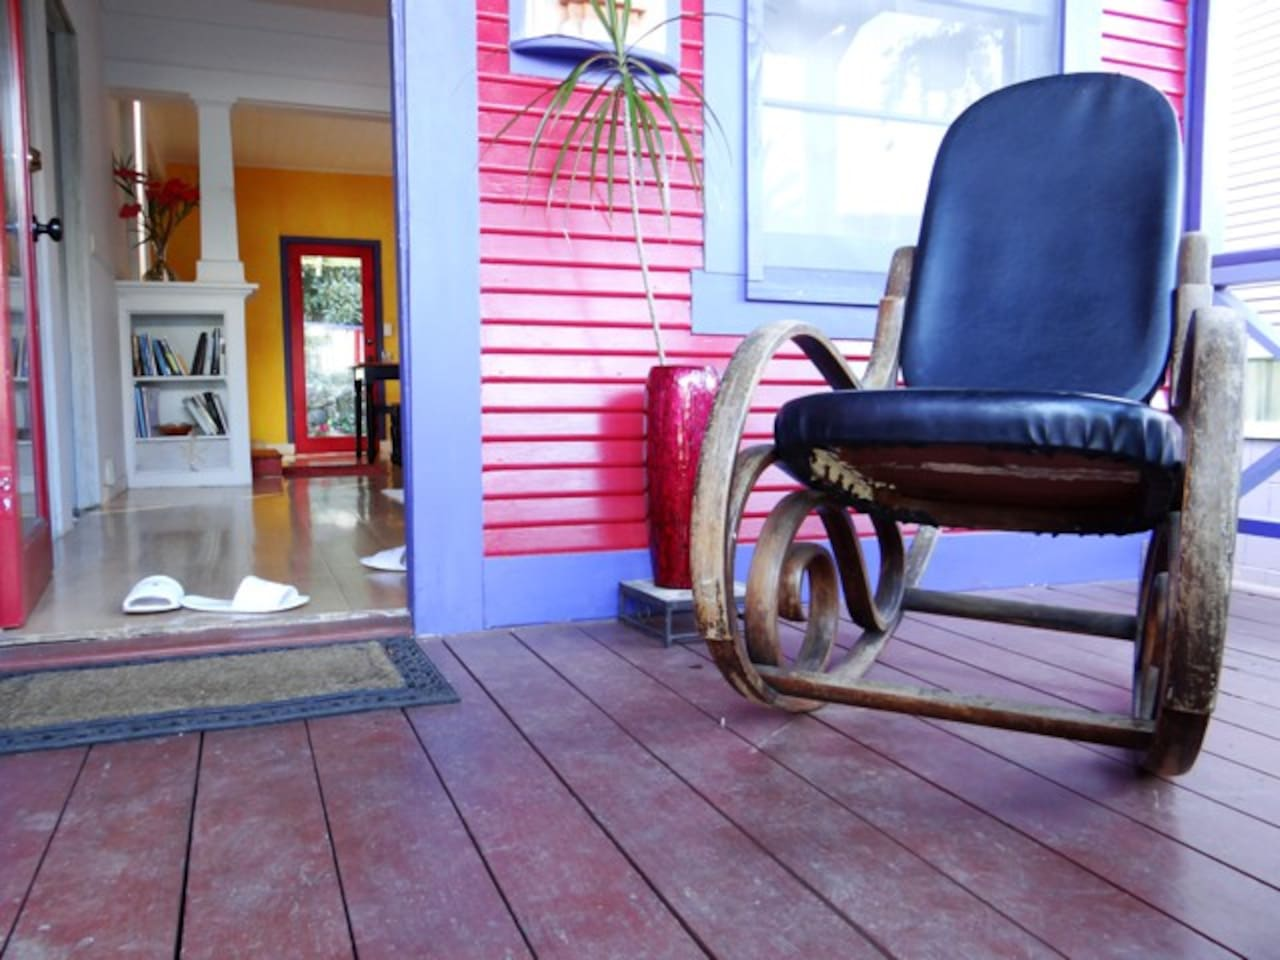 E Komo Mai.. Welcome to The Sugar Shack .. a 2 bedroom guest cottage in the heart of Downtown Hilo.